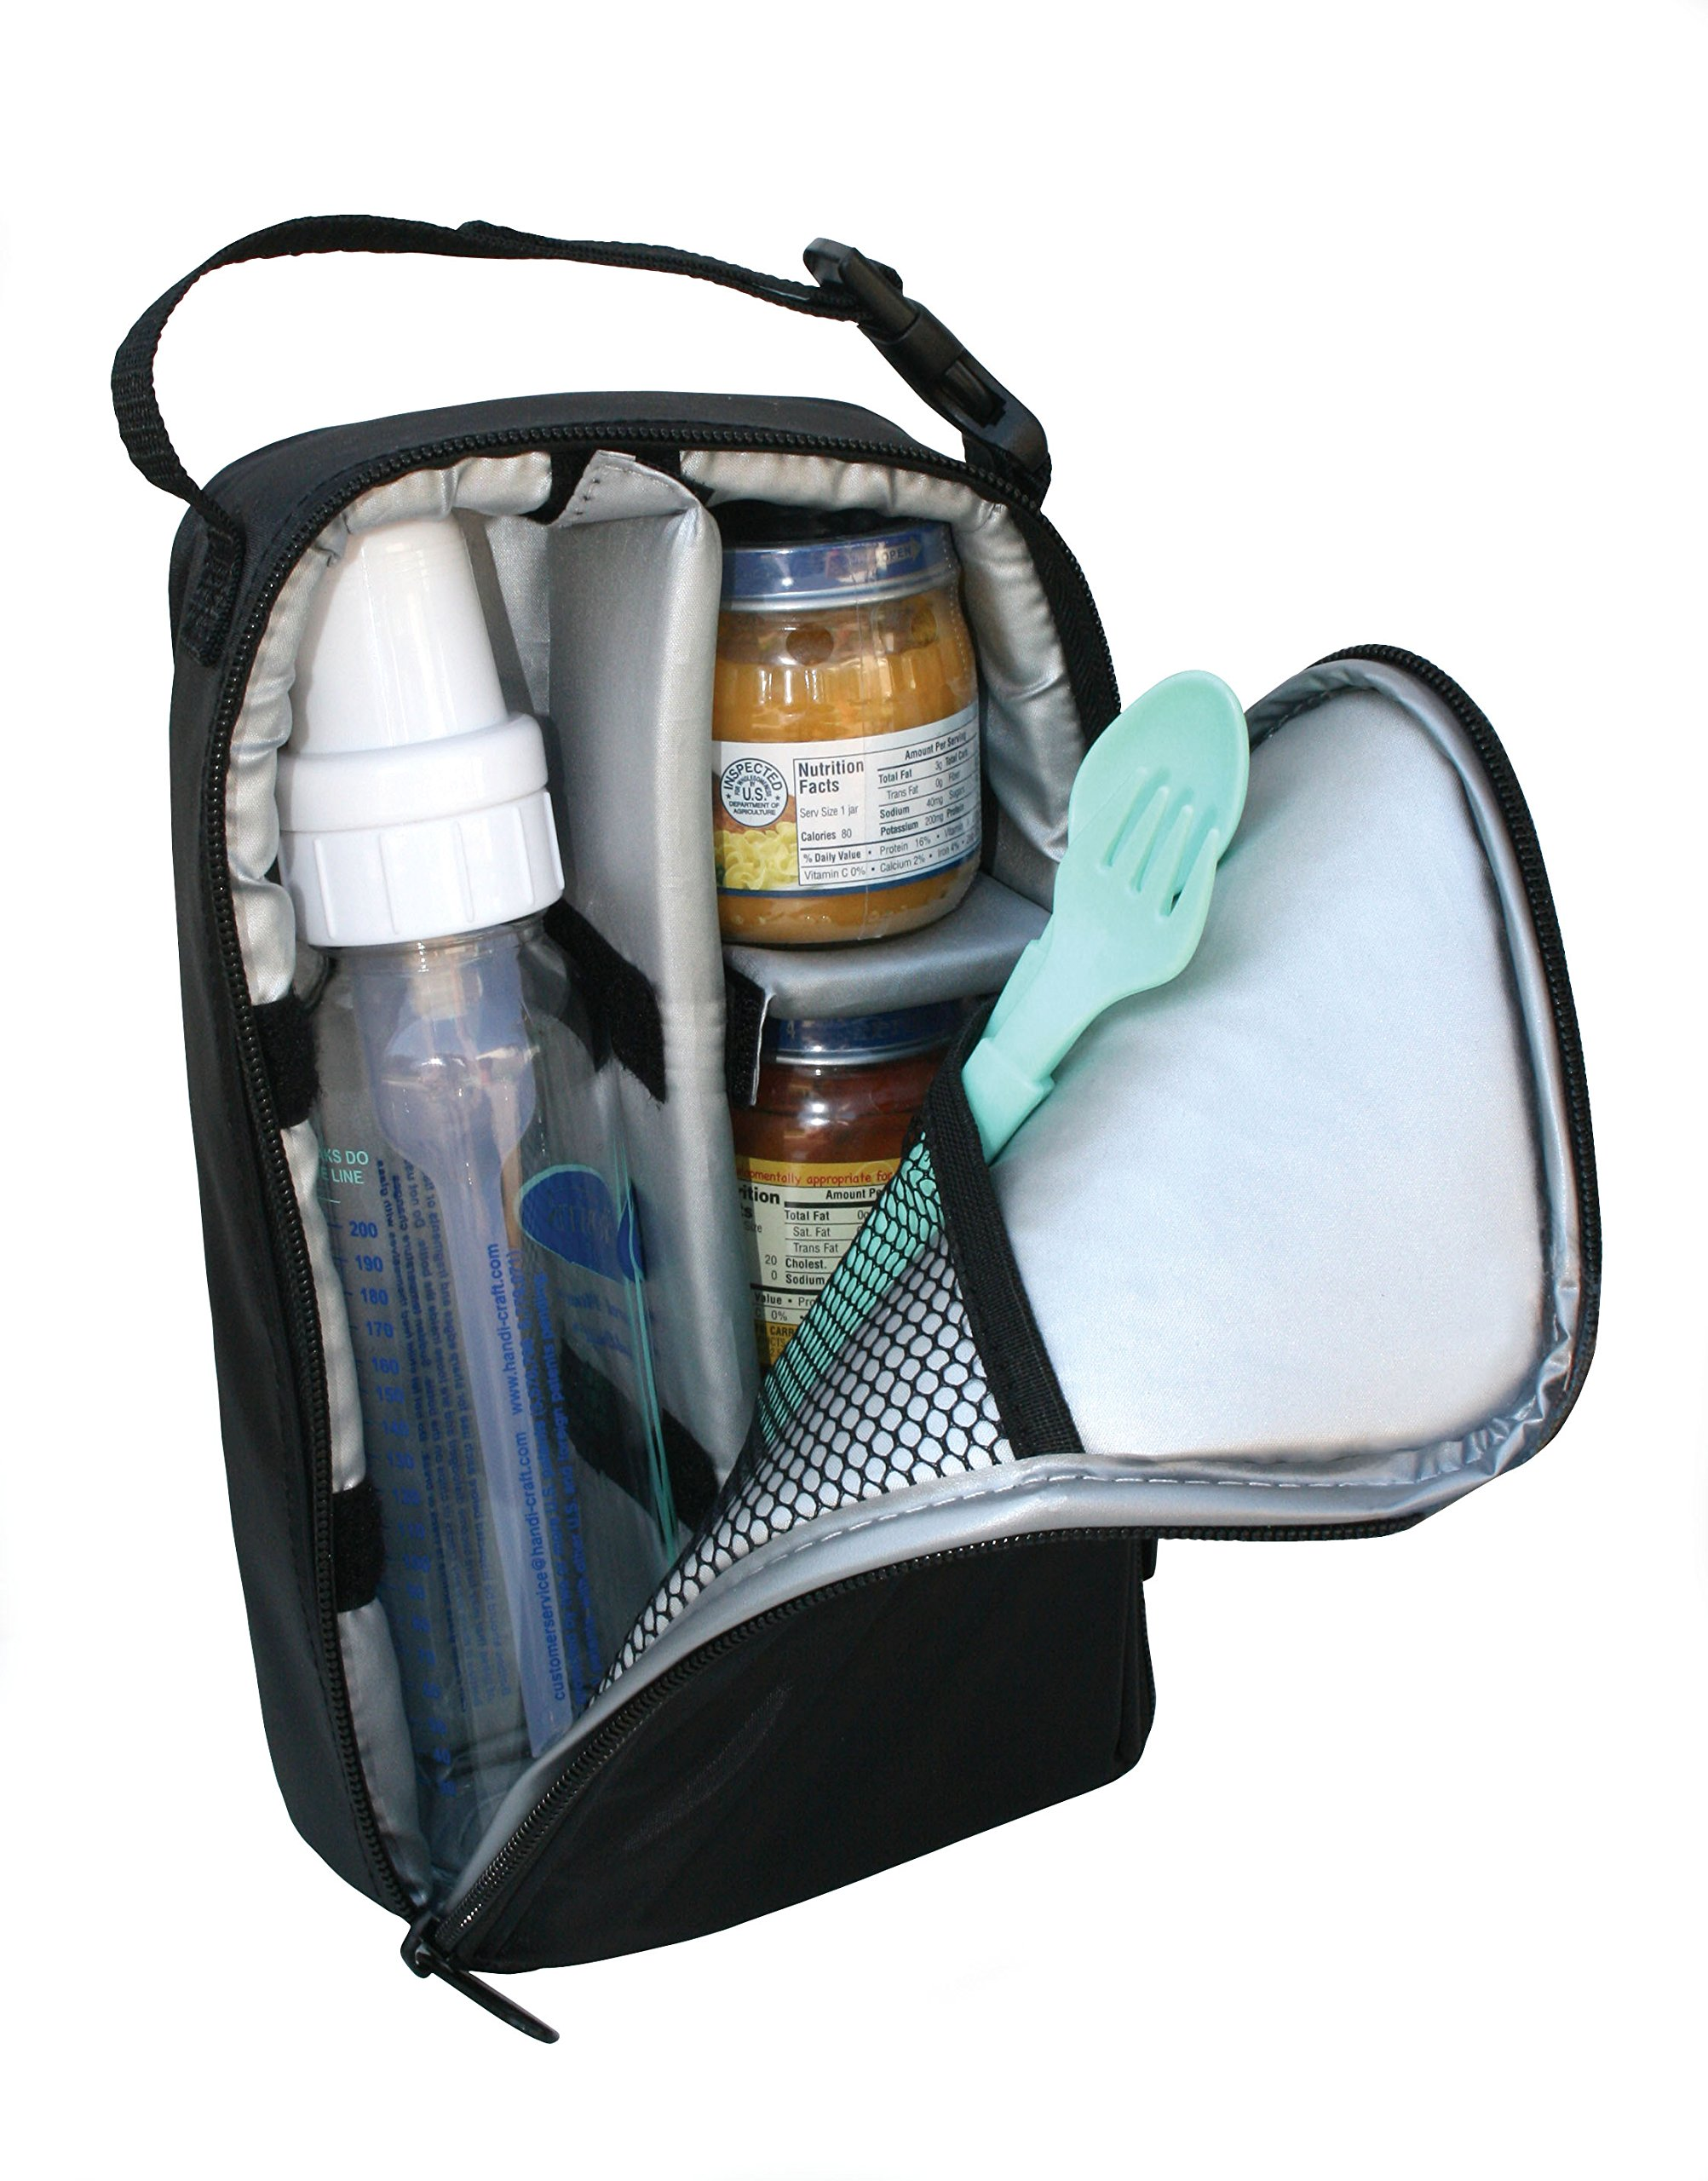 J.L. Childress Pack 'N Protect, Insulated Cooler Bag for Glass Baby Bottles and Food Containers, Portable Travel and On-The-Go Protection, Black by J.L. Childress